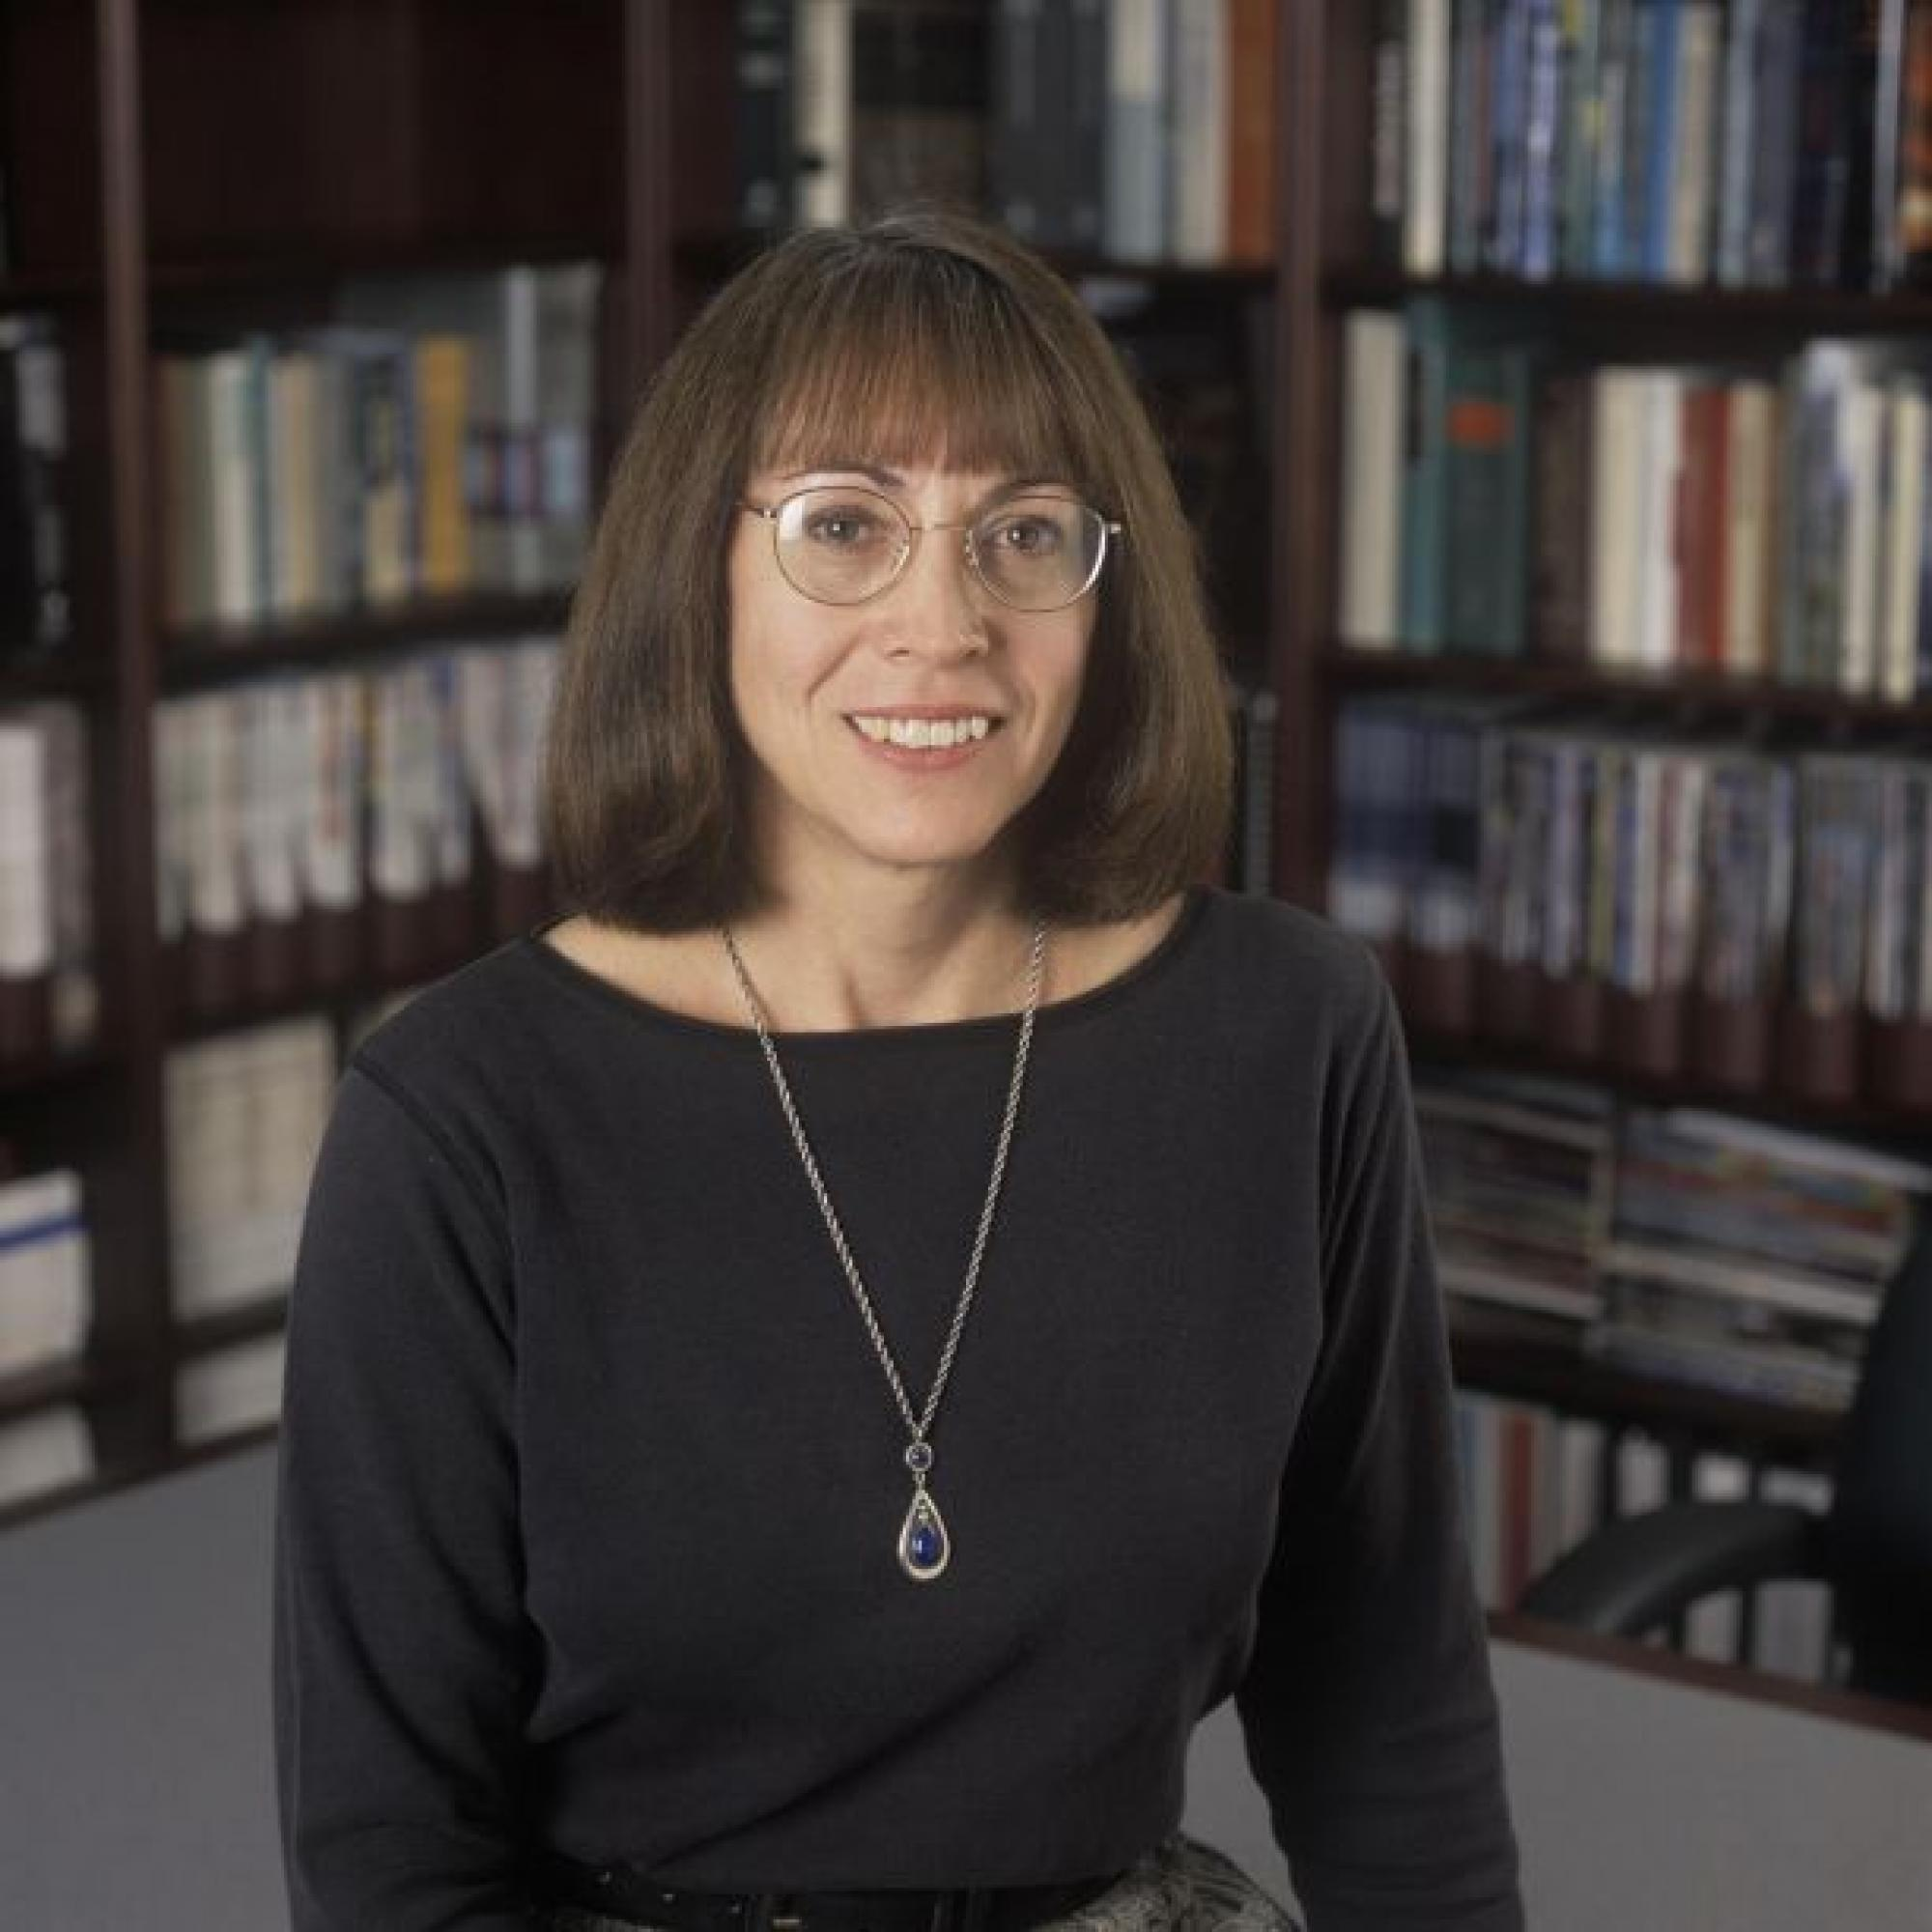 """""""Selection as an AAU STEM Project Site is a great honor that will facilitate UA interaction with other AAU institutions for improvement in STEM teaching and learning,"""" said Gail D. Burd, UA vice provost for academic affairs."""